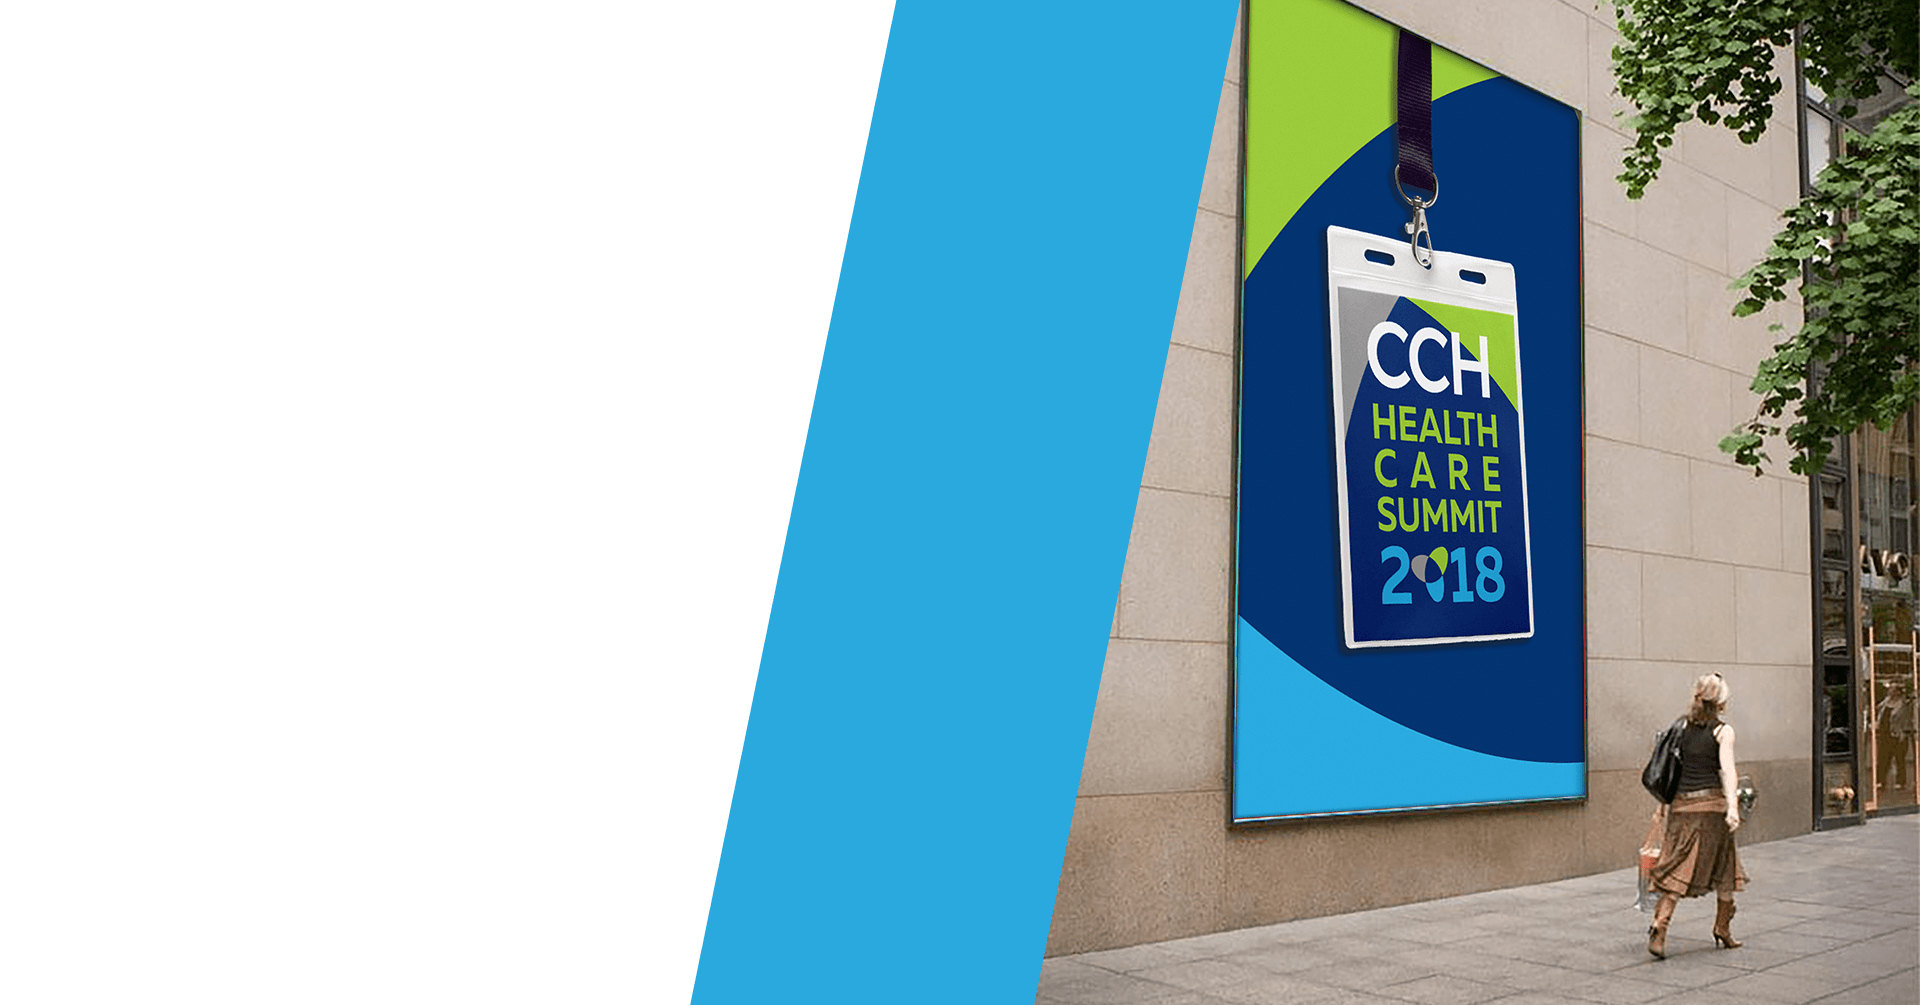 CCH Healthcare Wall Ad - iDesign Branding